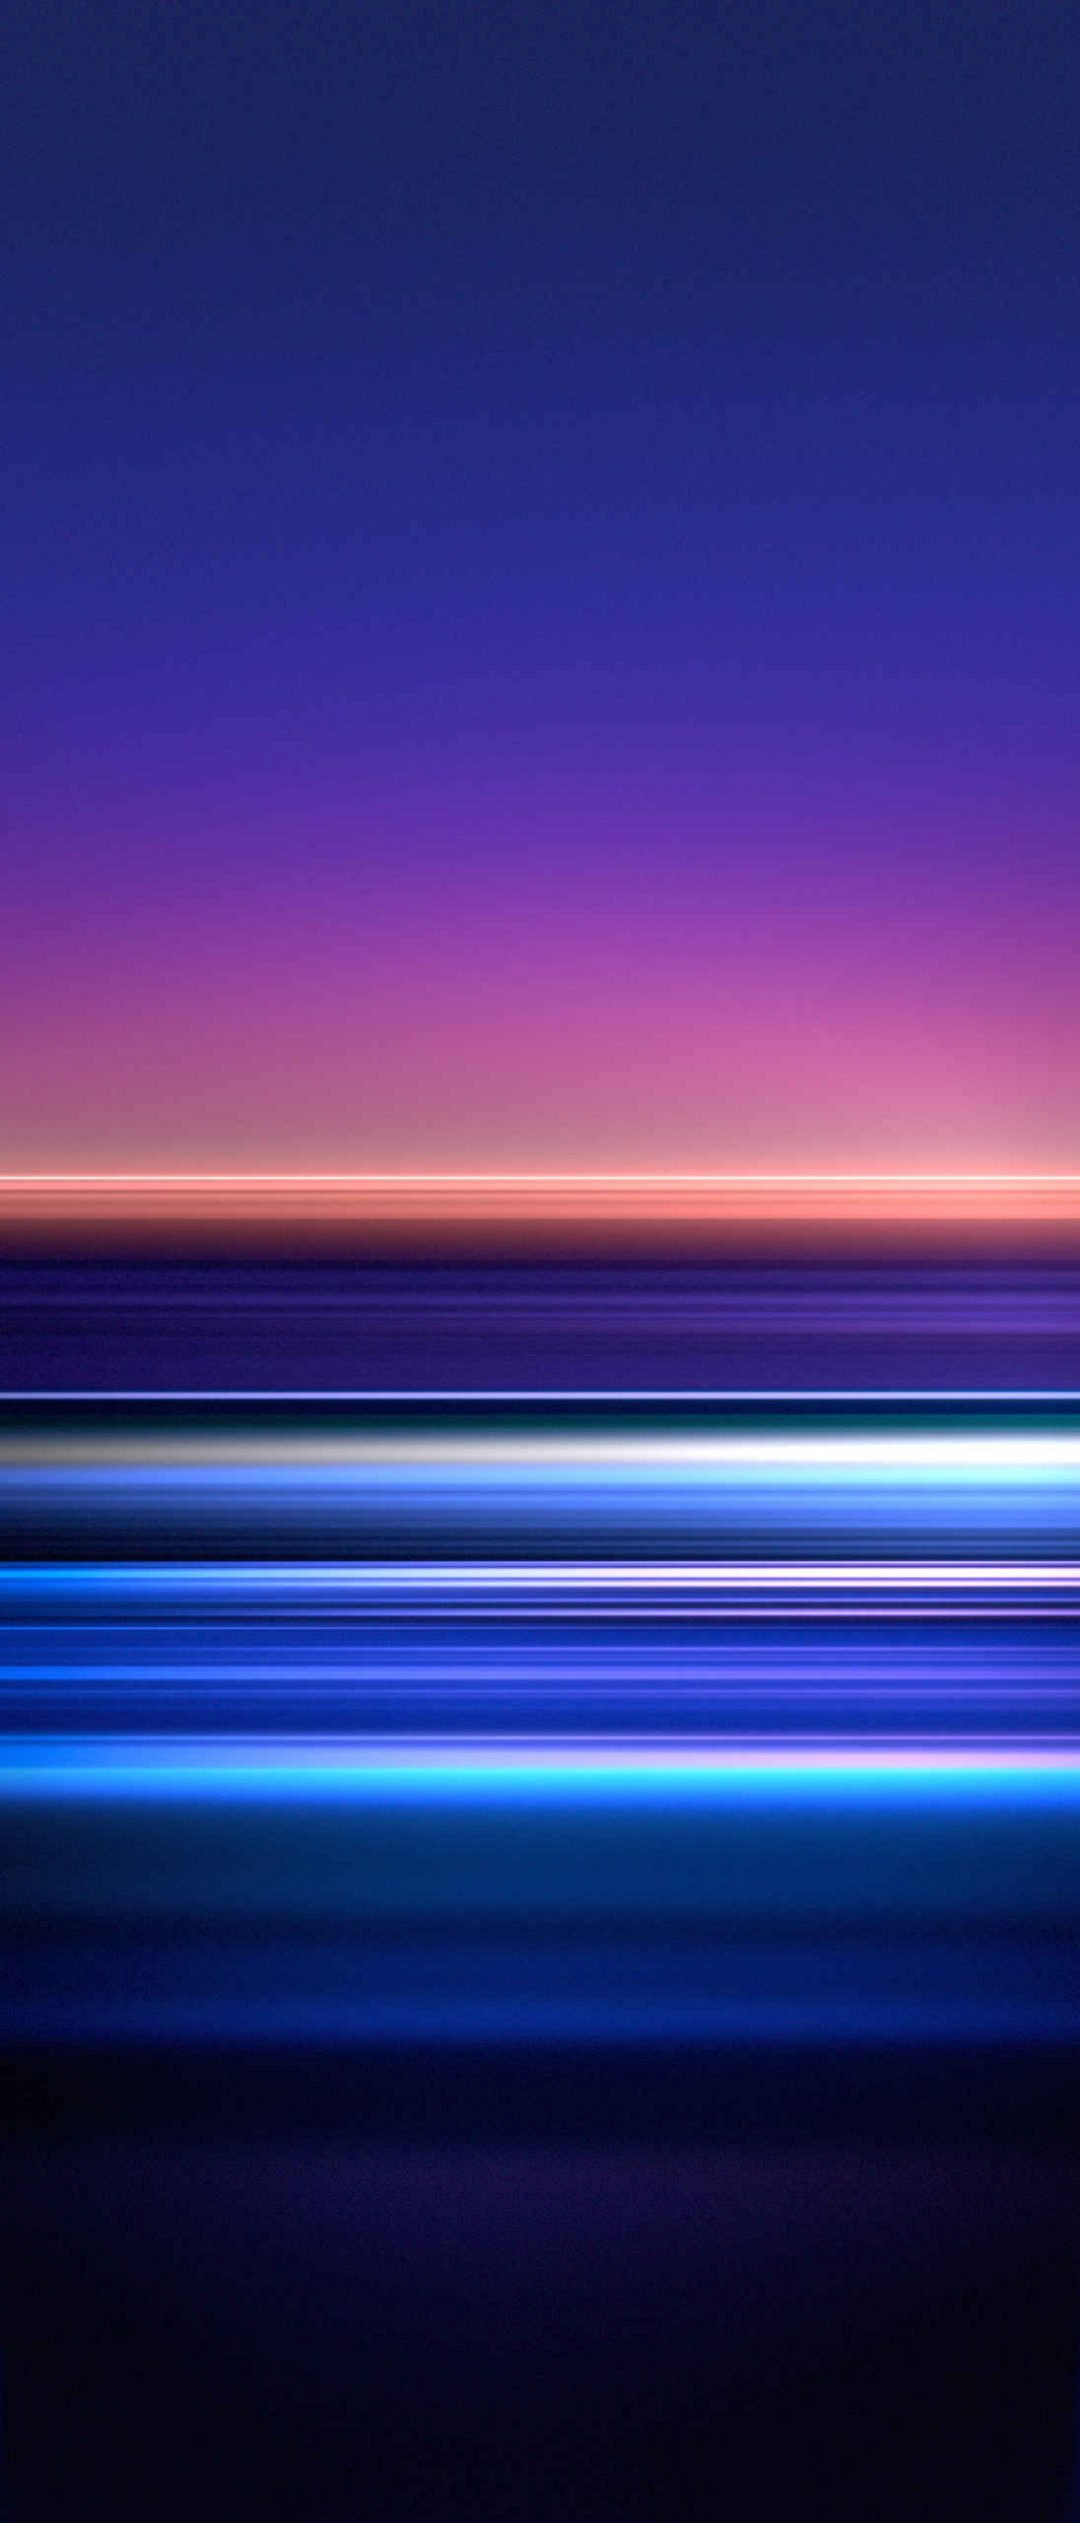 Sony Xperia 1 Stock Wallpapers - Download | DroidViewsXperia Z1 Stock Wallpaper